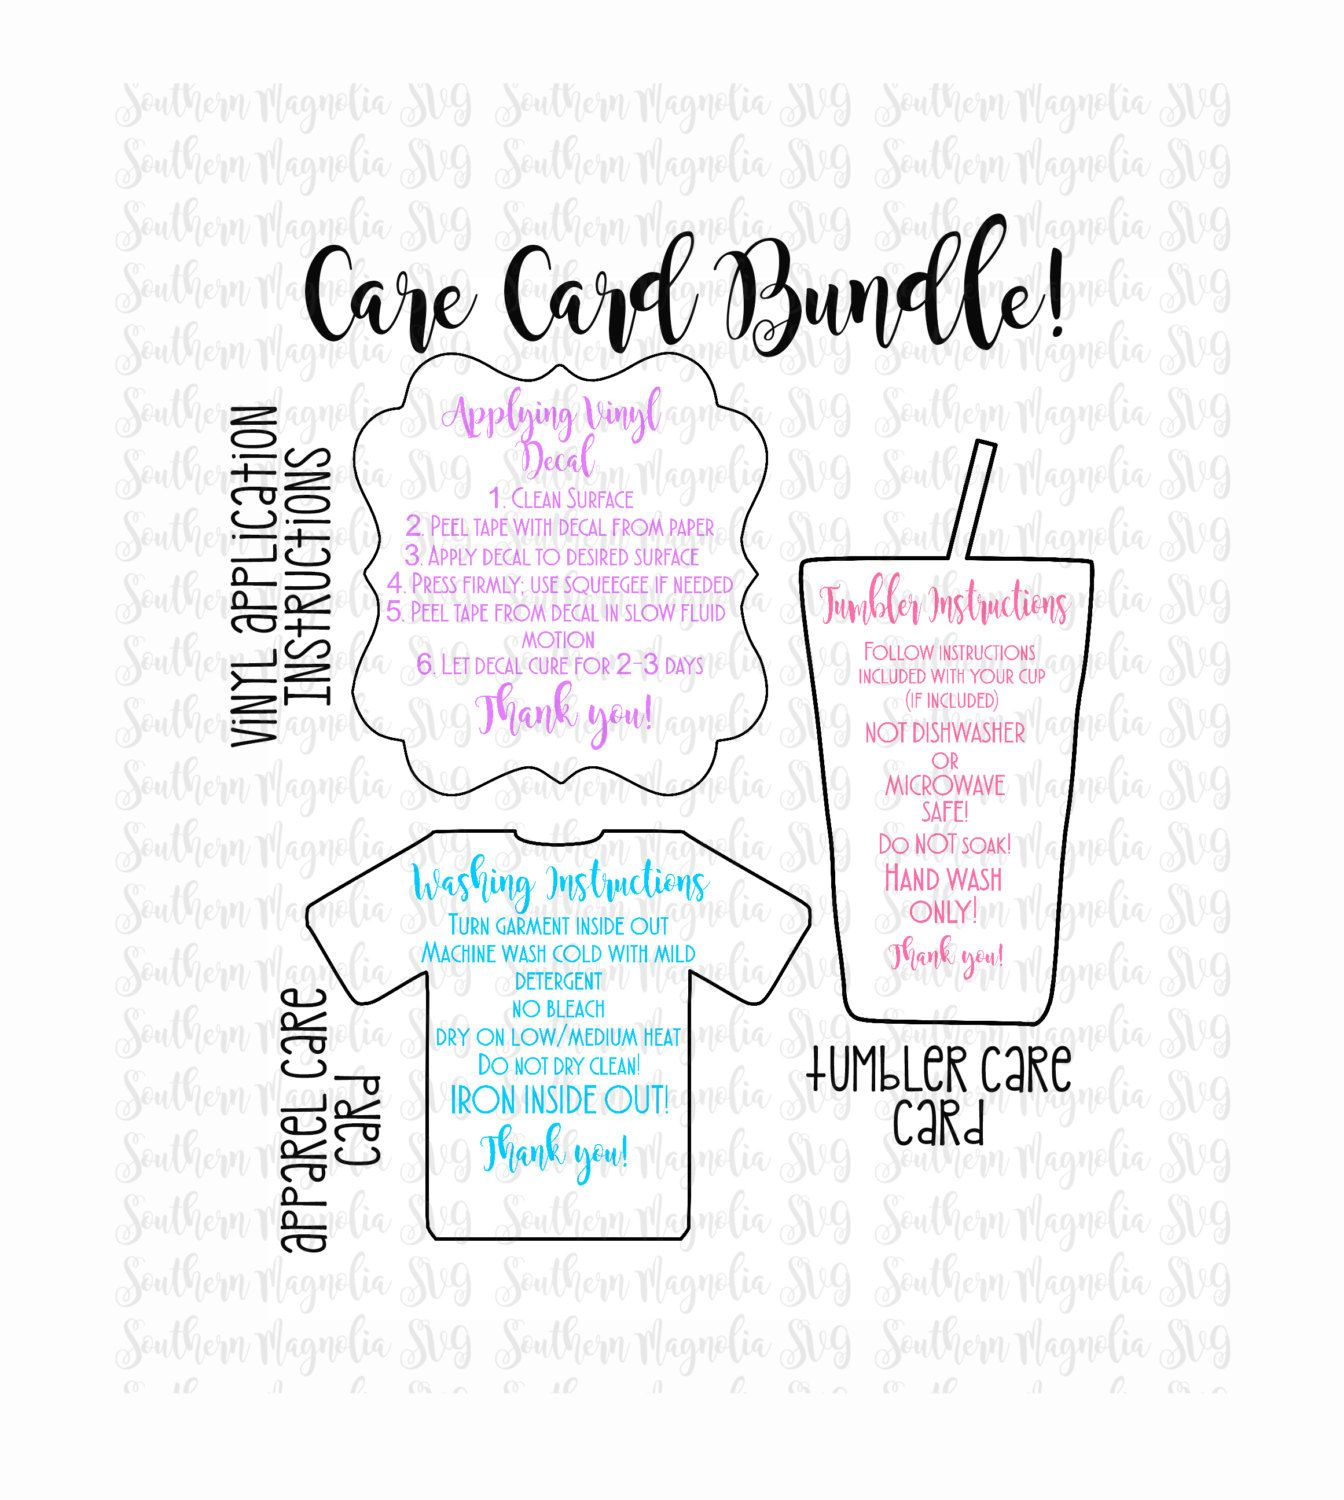 Care Card Instructions BUNDLE Apply Vinyl By SouthernMagnoliaSVG - Vinyl cup care instructions